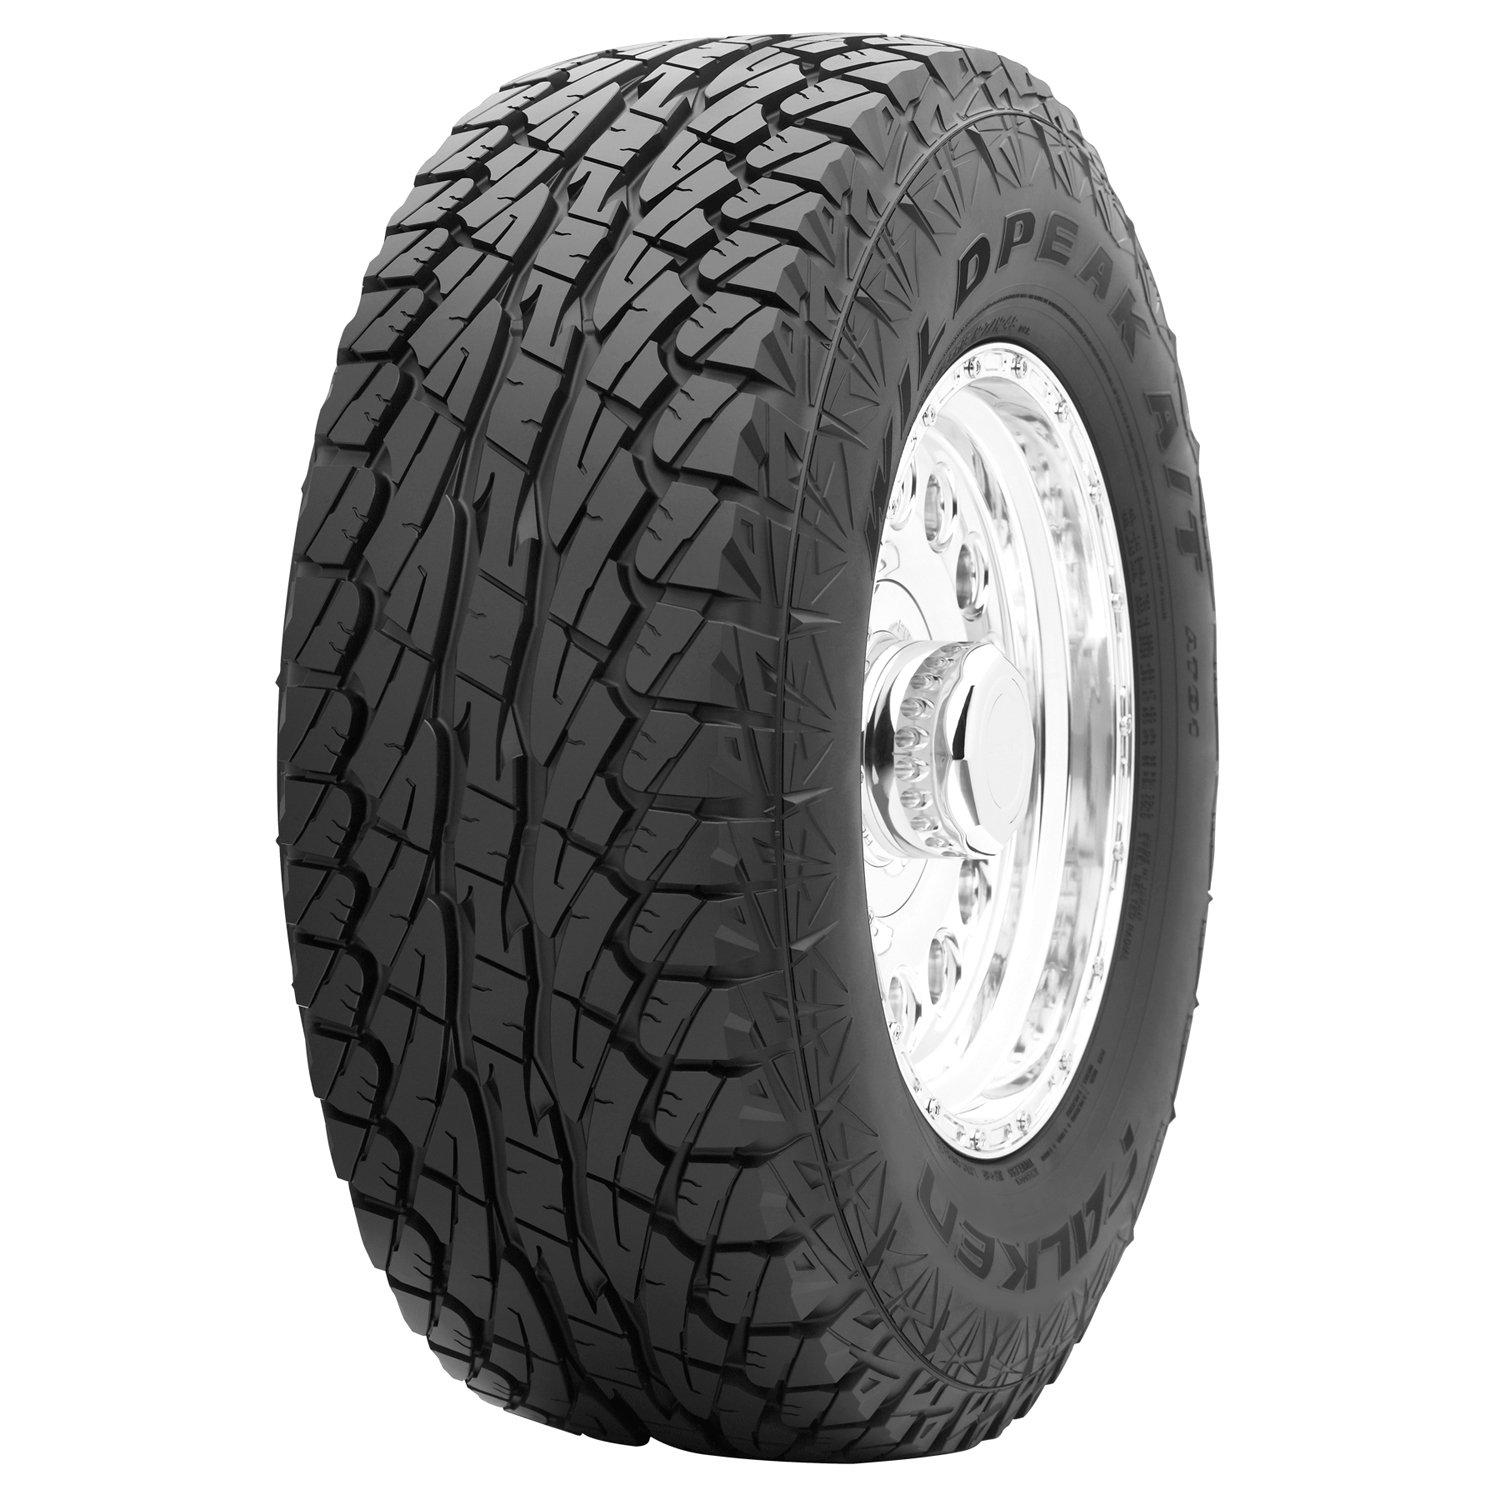 Falken Wildpeak A/T - P265/70R17 113S BW - All Terrain Tire 265-70-17